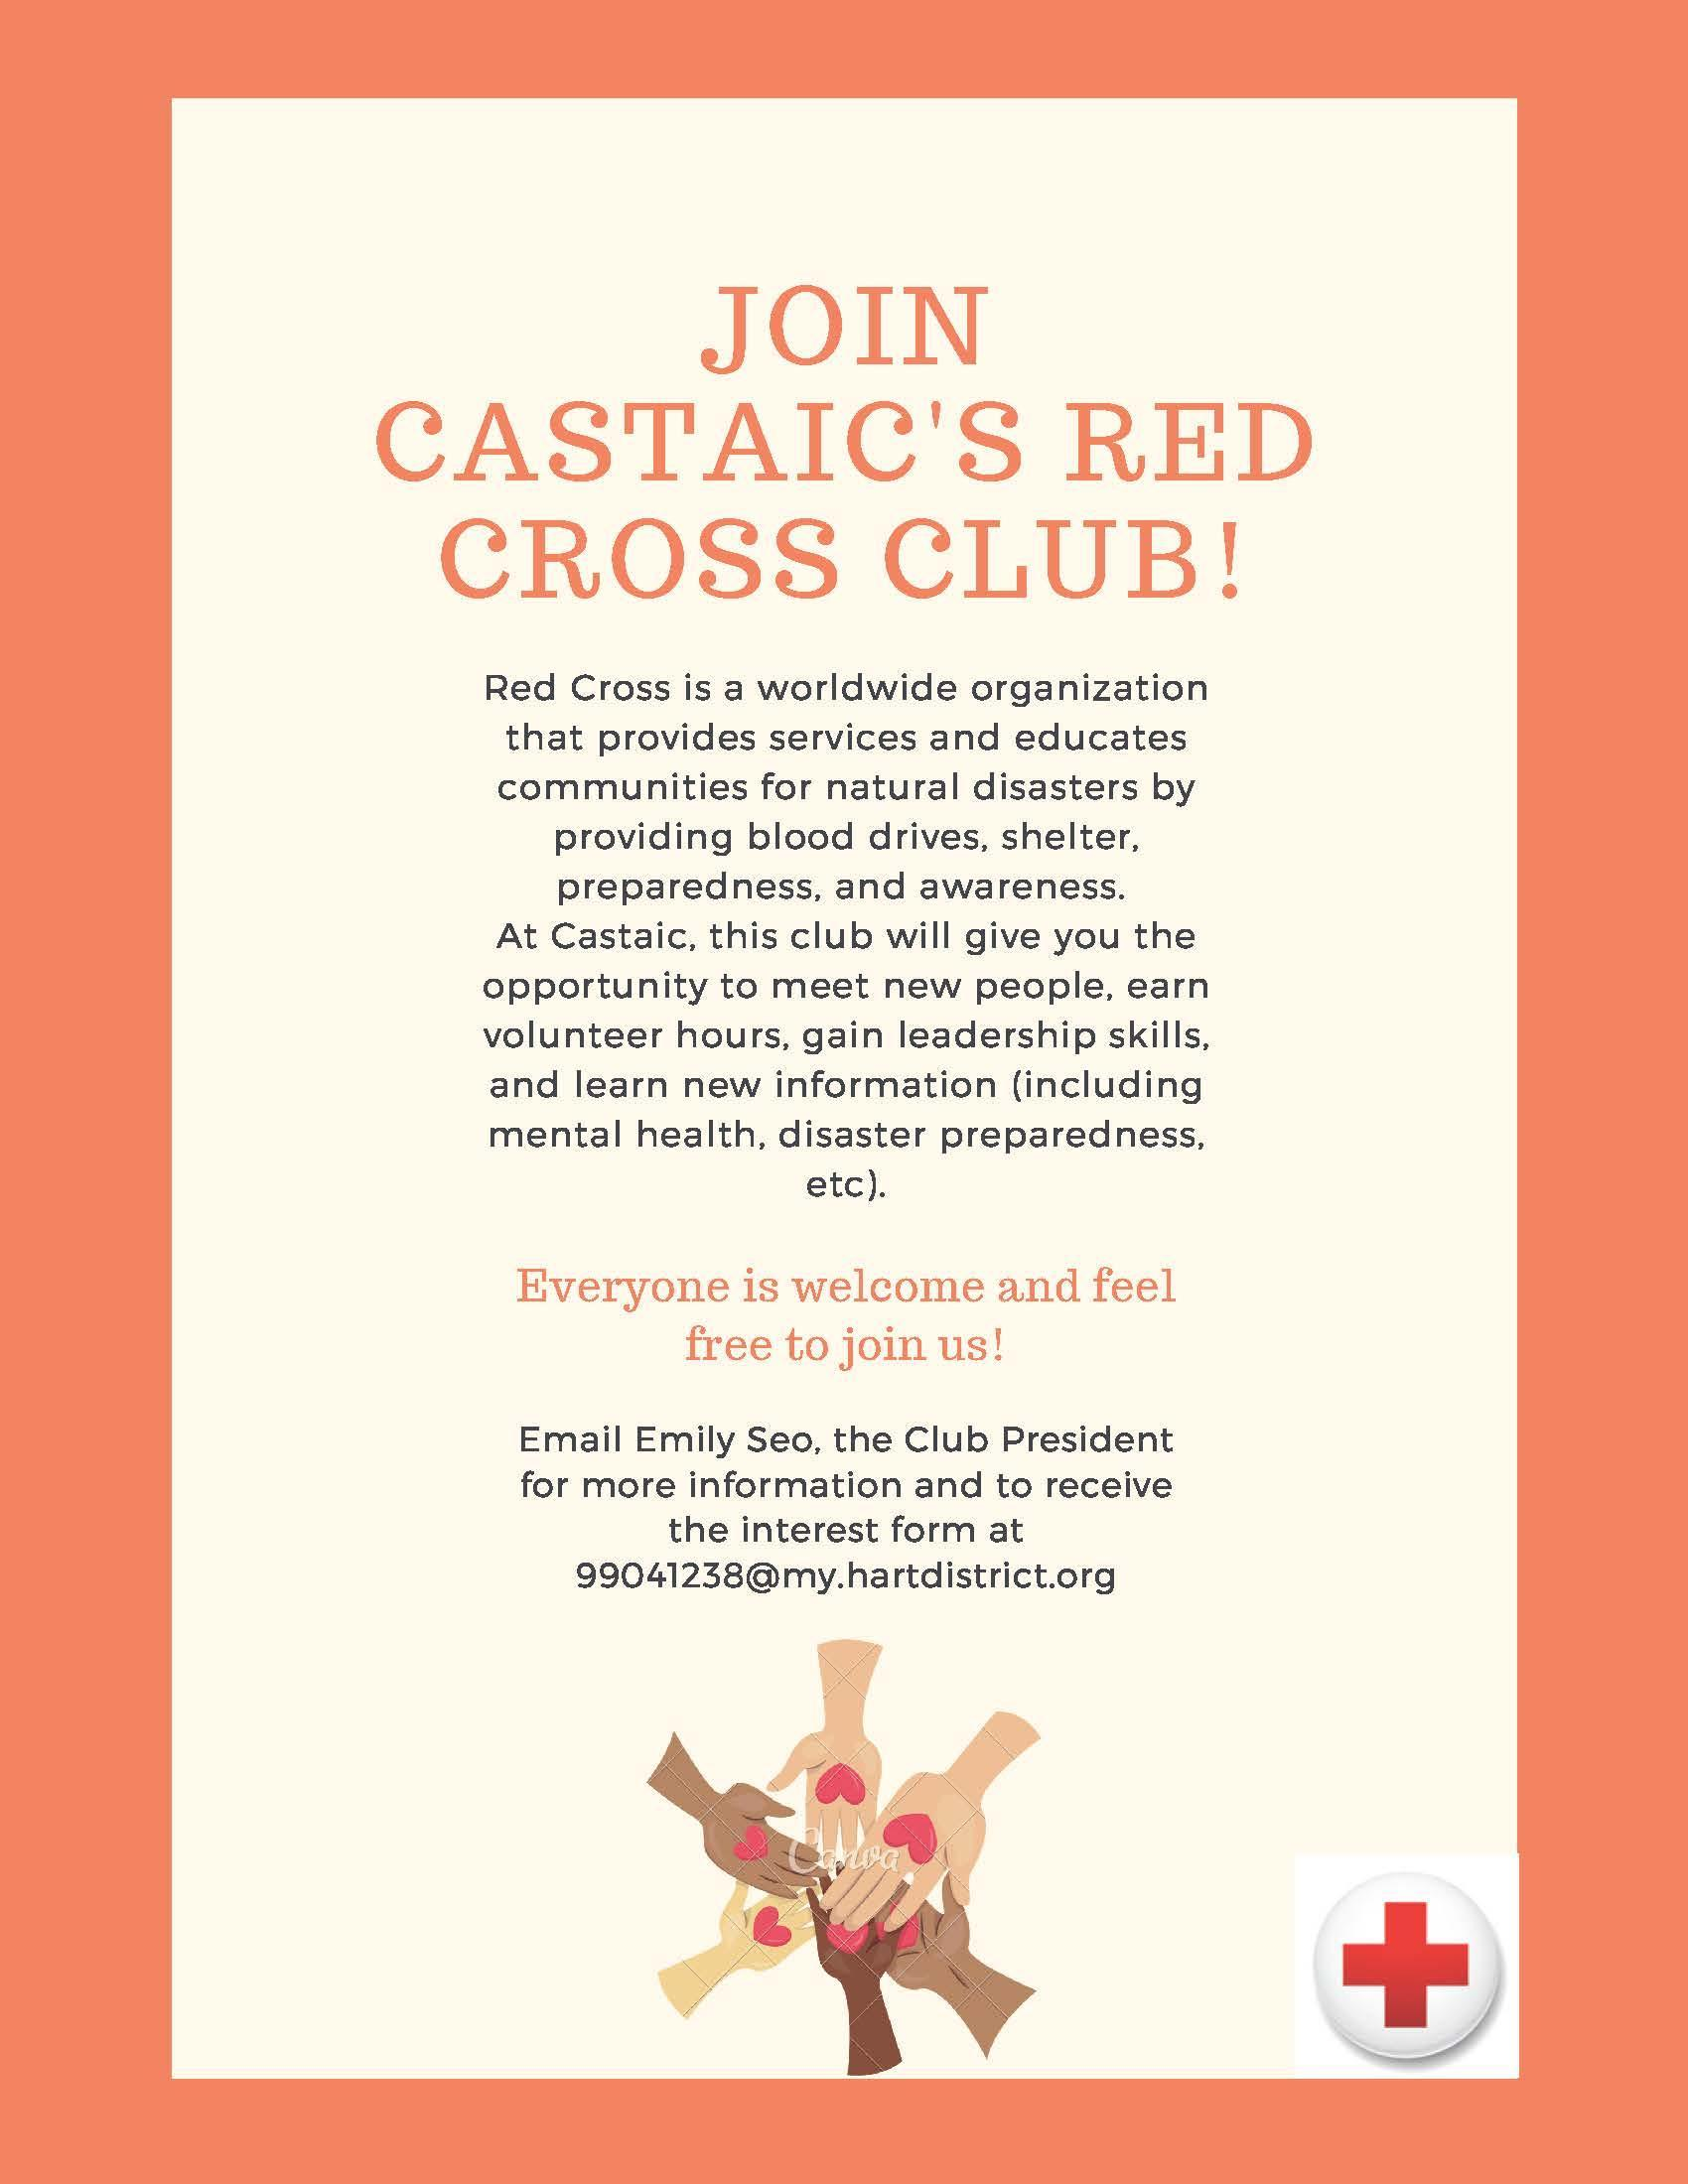 Join Castaic's Red Cross Club